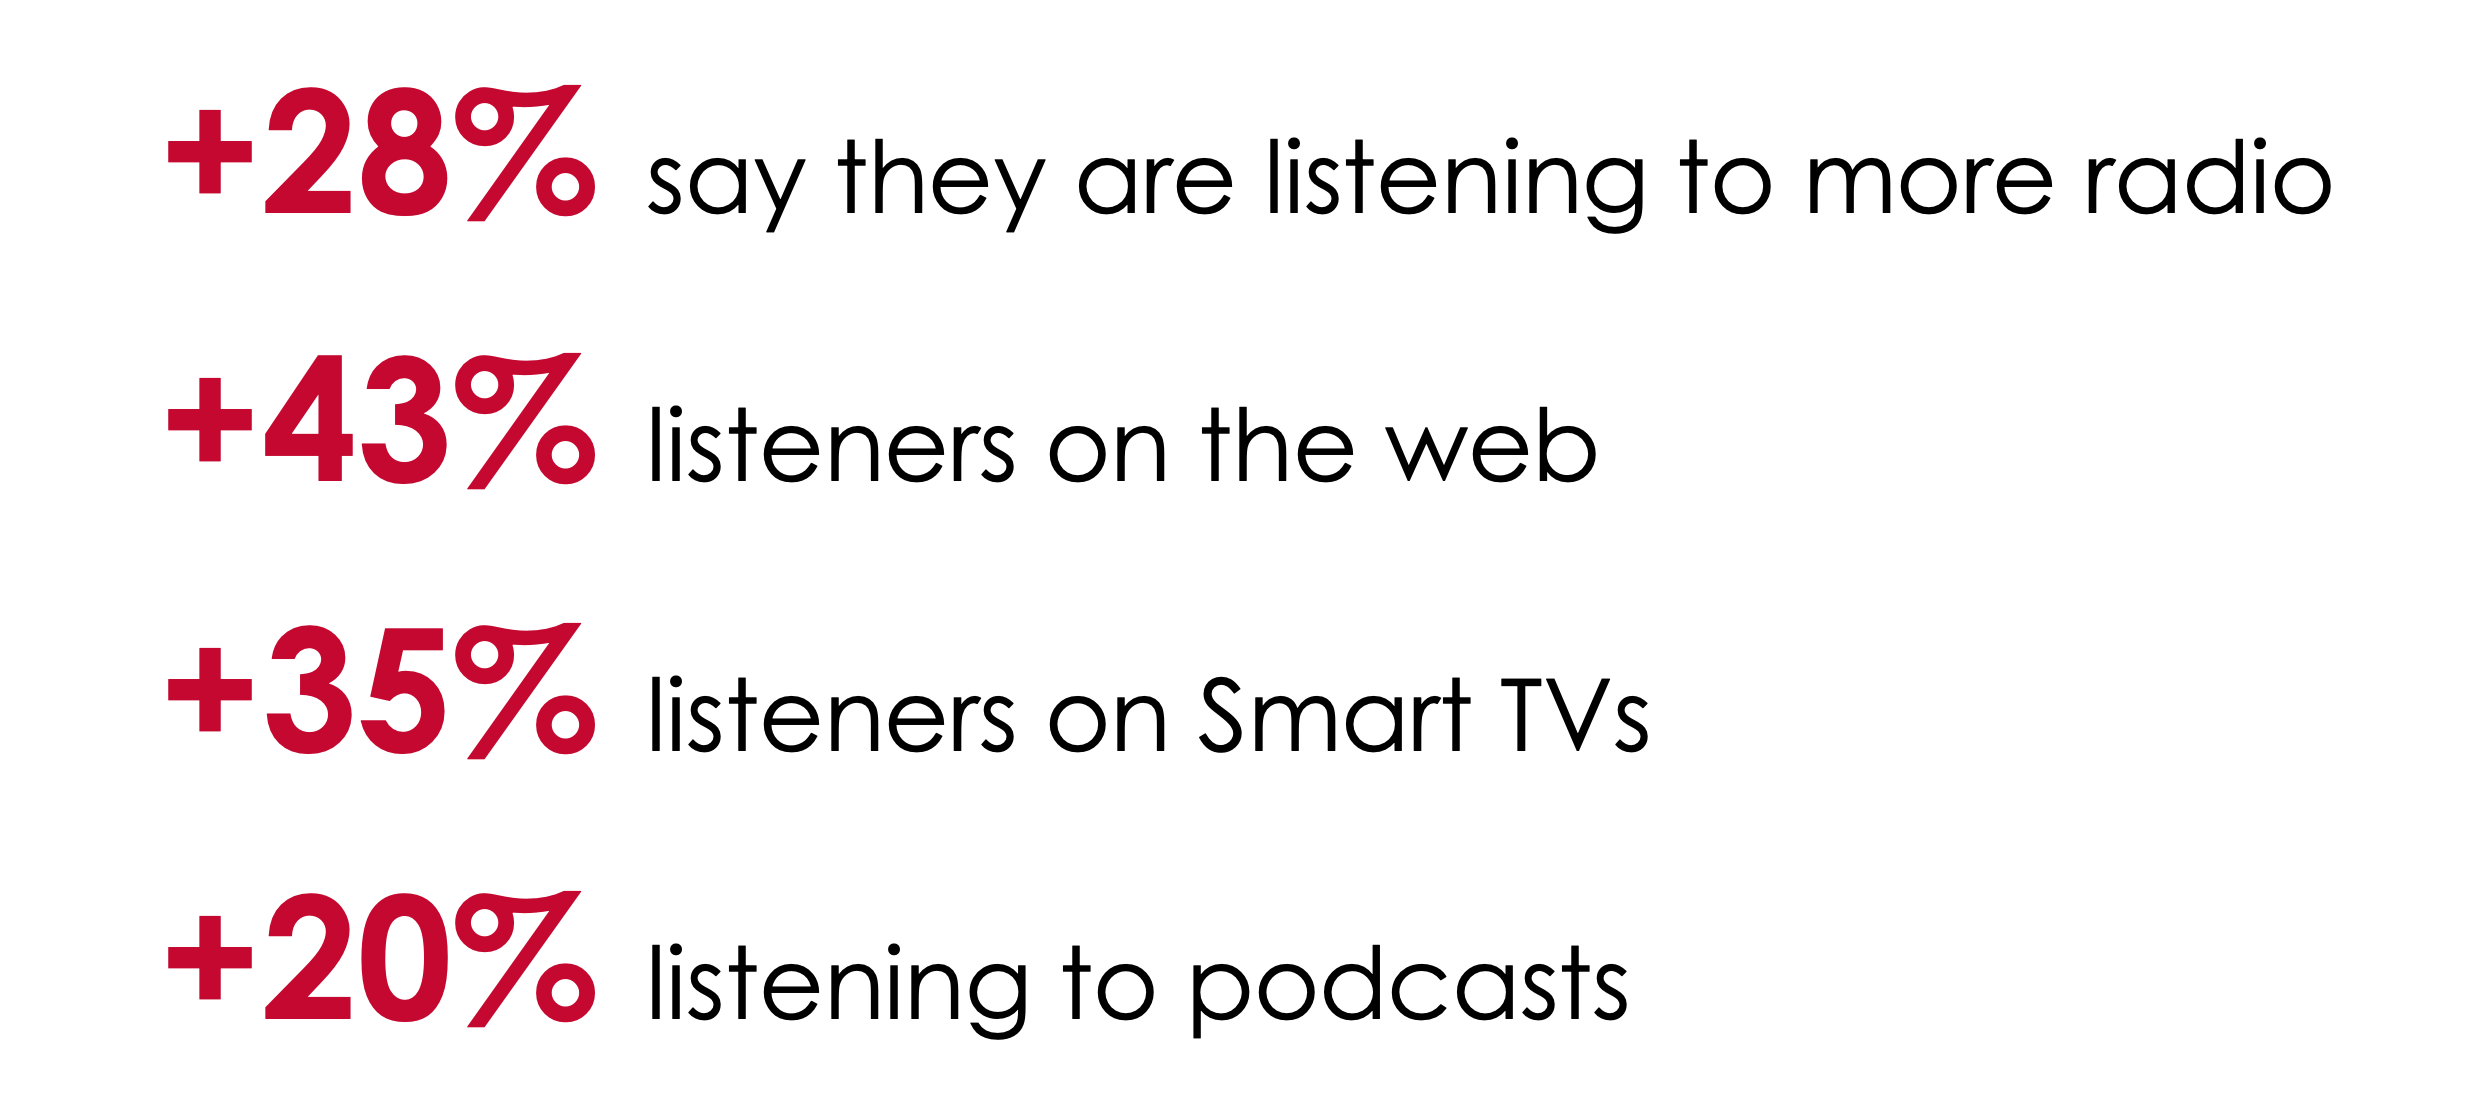 iHeart stats graphic about consumers listening to radio at home: 28% say they are listening to more radio; 43% listeners on the web; 35% listeners on Smart TVs; 20% listening to podcasts